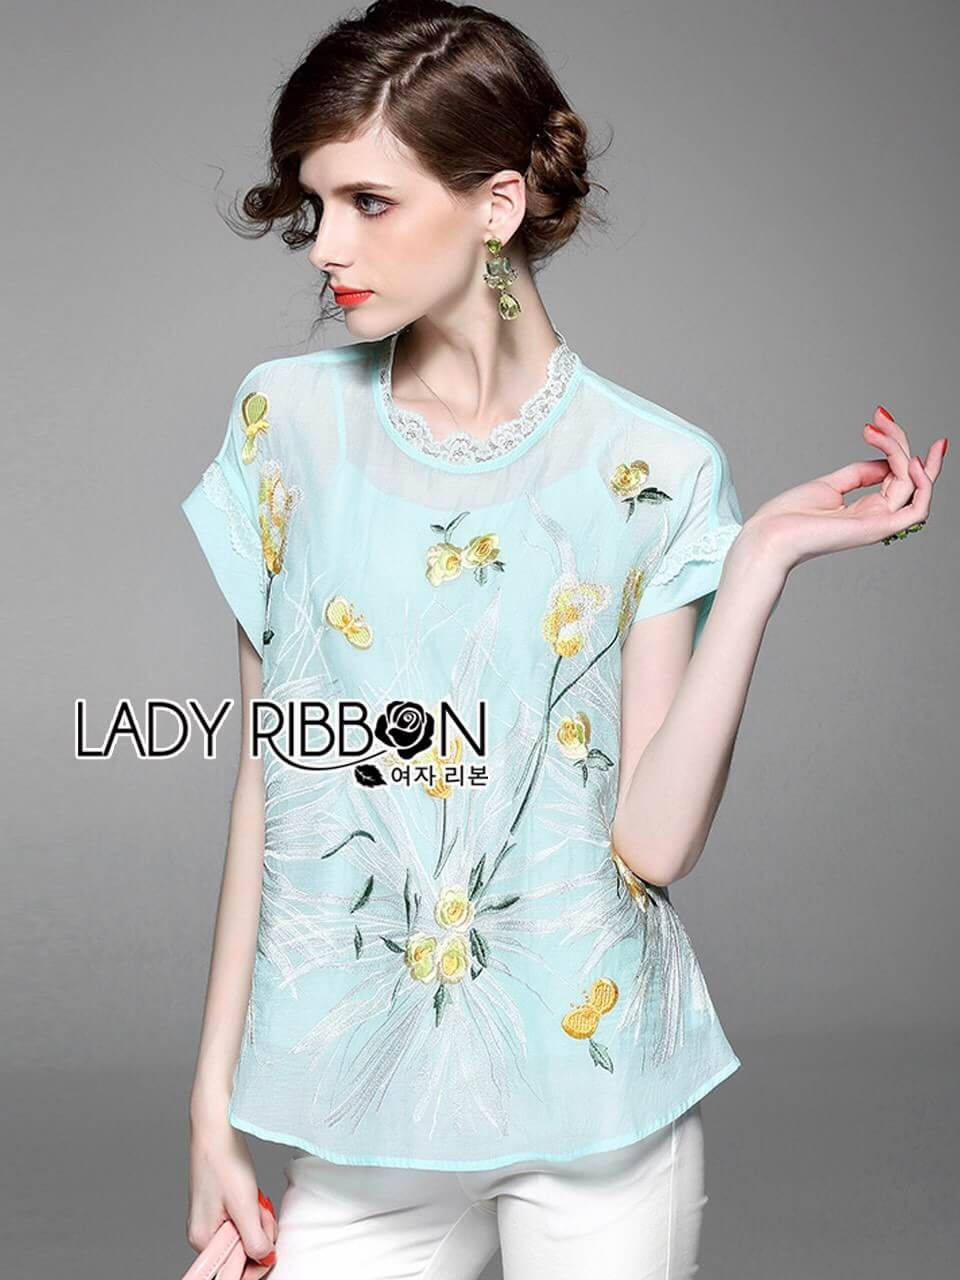 &#x1F380 Lady Ribbon's Made &#x1F380 Lady Grace Pastel Floral Embroidered Blouse